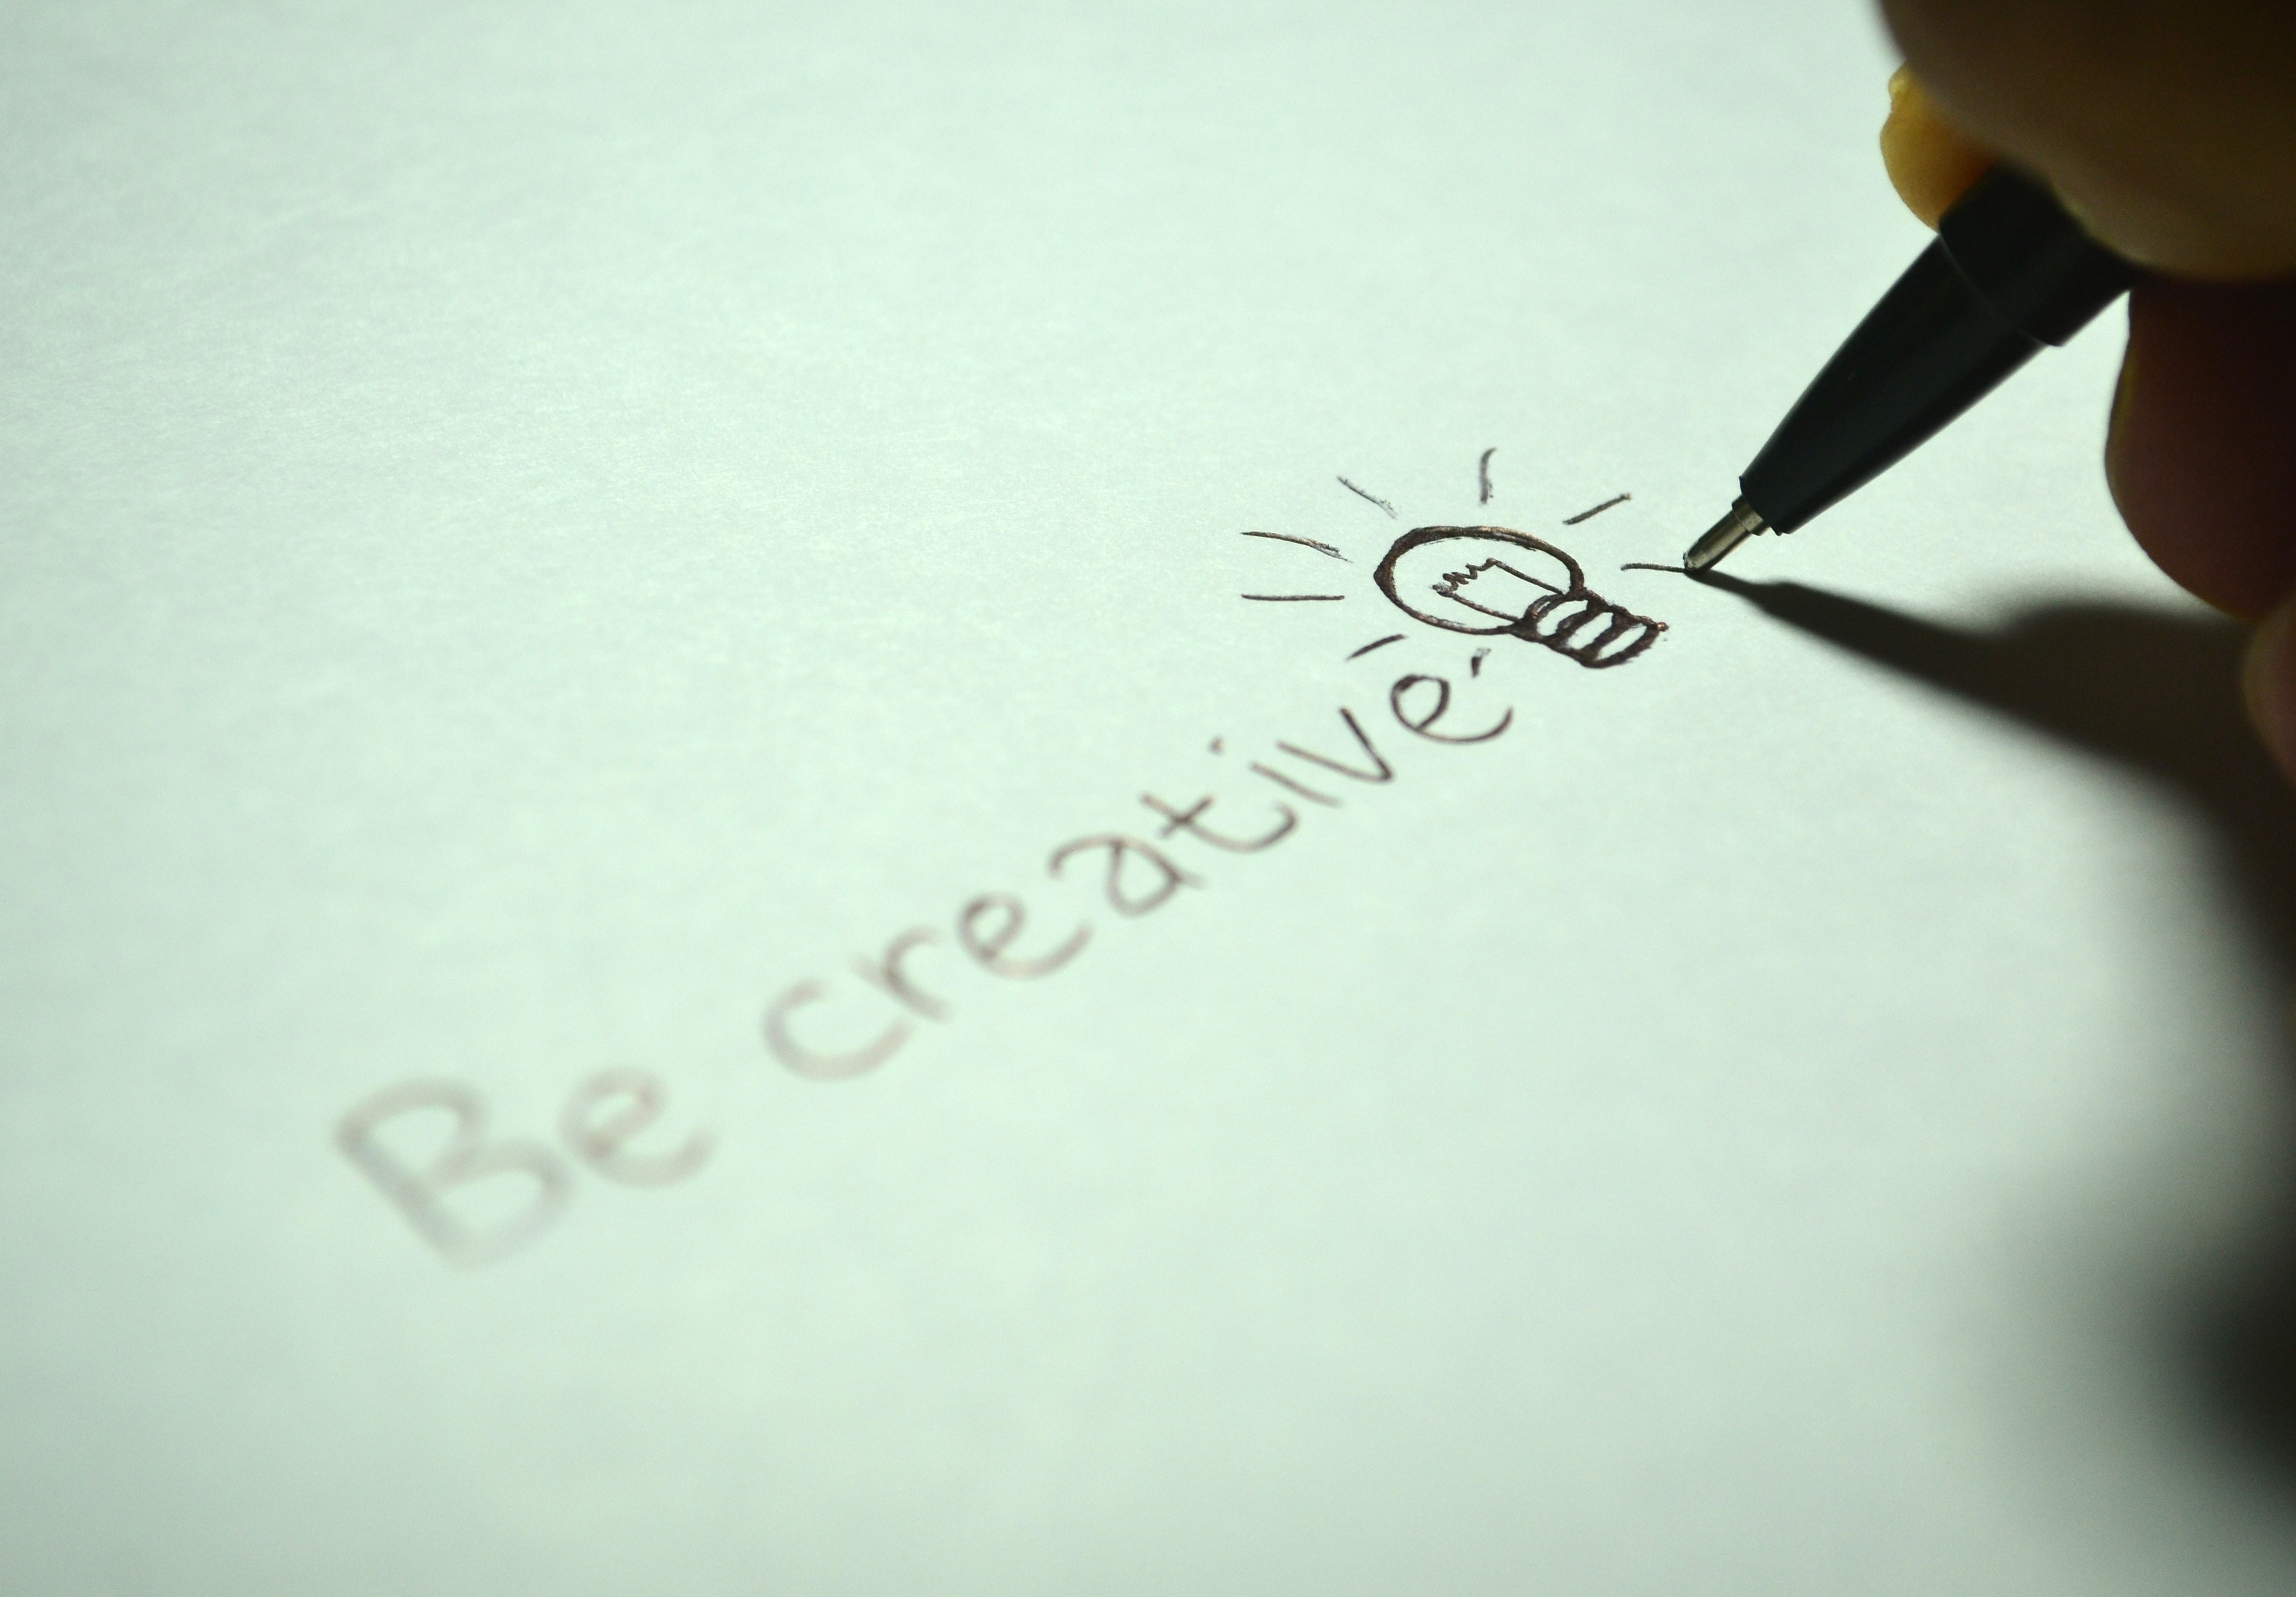 Breaking the Monotony through Creative Expression